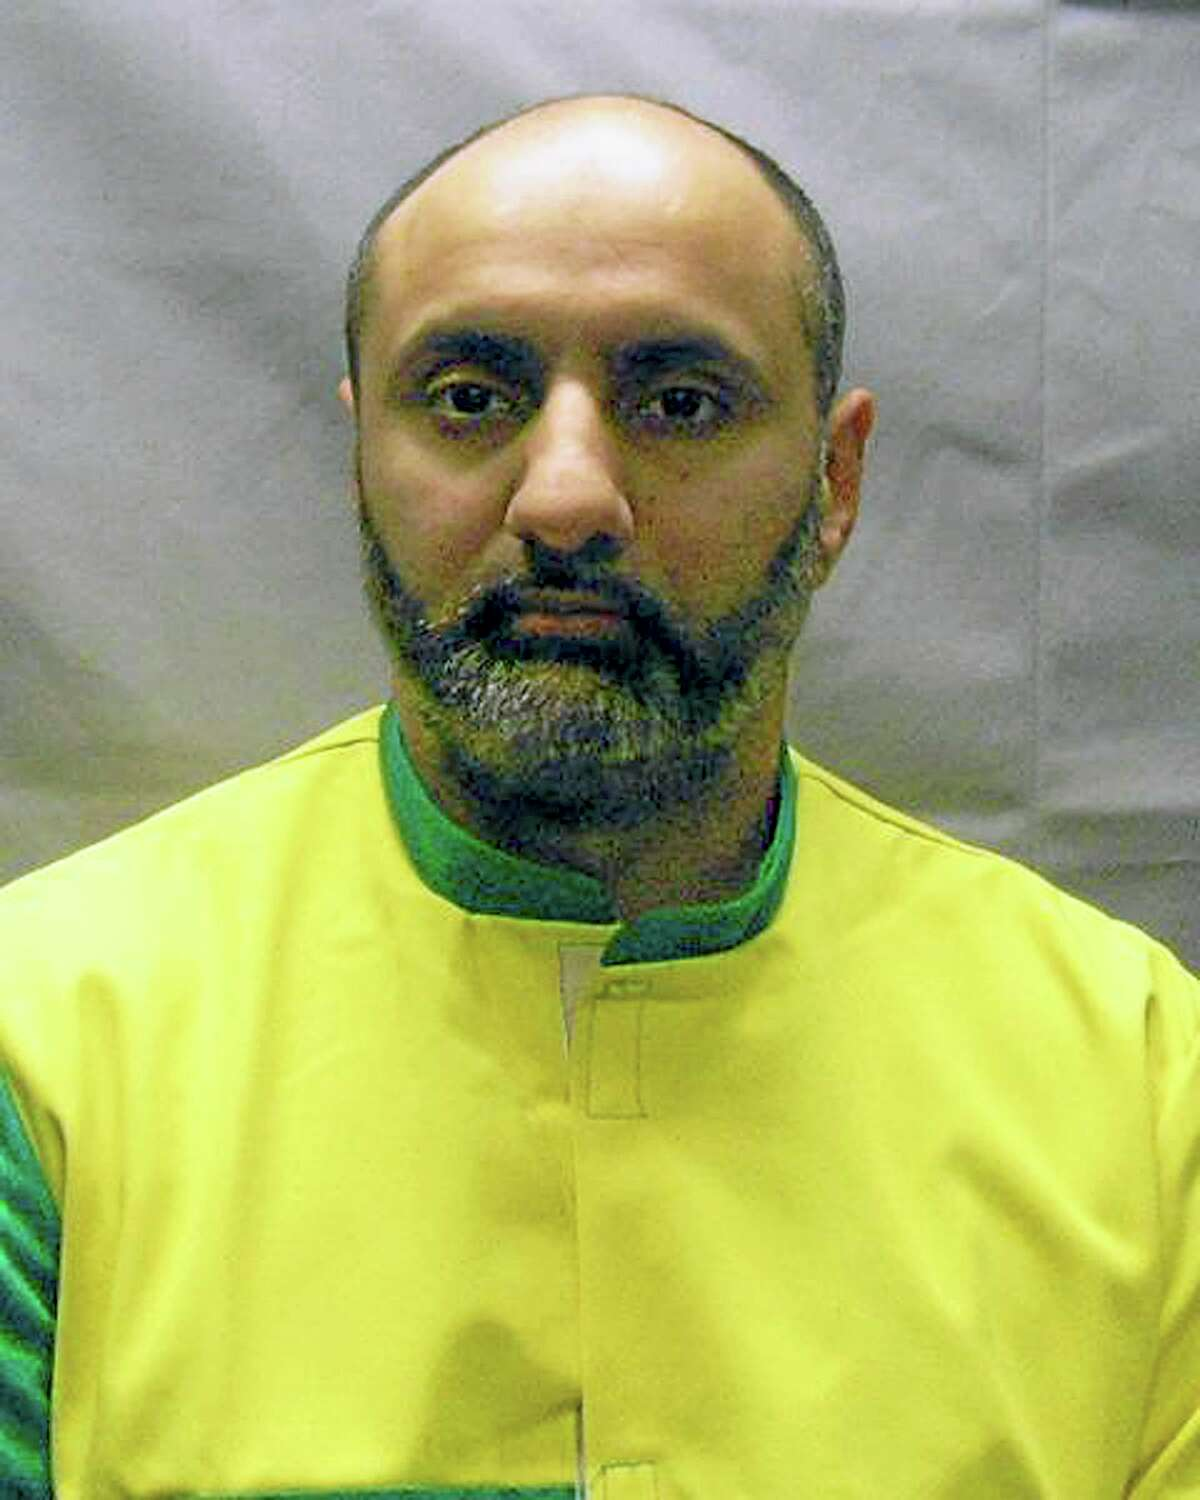 This Nov. 9, 2012, file photo provided by the U.S. Attorney's Office shows Babar Ahmad, extradited with Syed Talha Ahsan to the United States from Britain in October 2012 on charges of supporting terrorists. The men, both British citizens, have pleaded guilty to the charges. Ahmad faces sentencing Wednesday, July 16, 2014, in New Haven, Conn., for supporting terrorists through websites that sought to raise cash, recruits and solicit items such as gas masks for the Taliban regime in Afghanistan.